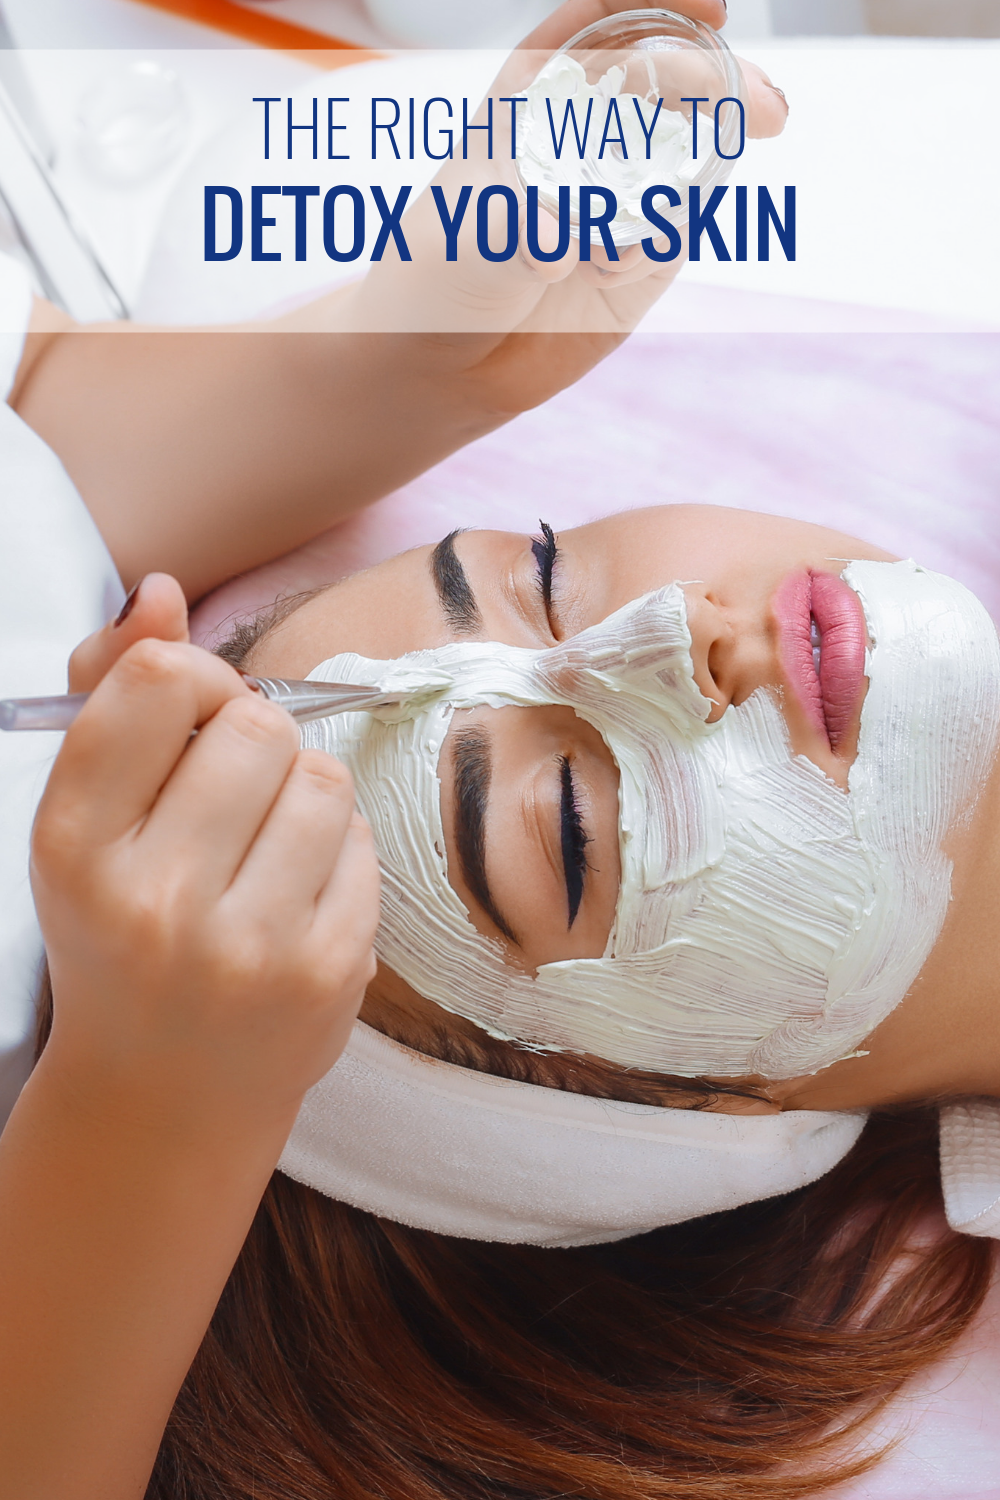 The Right Way to Detox Your Skin